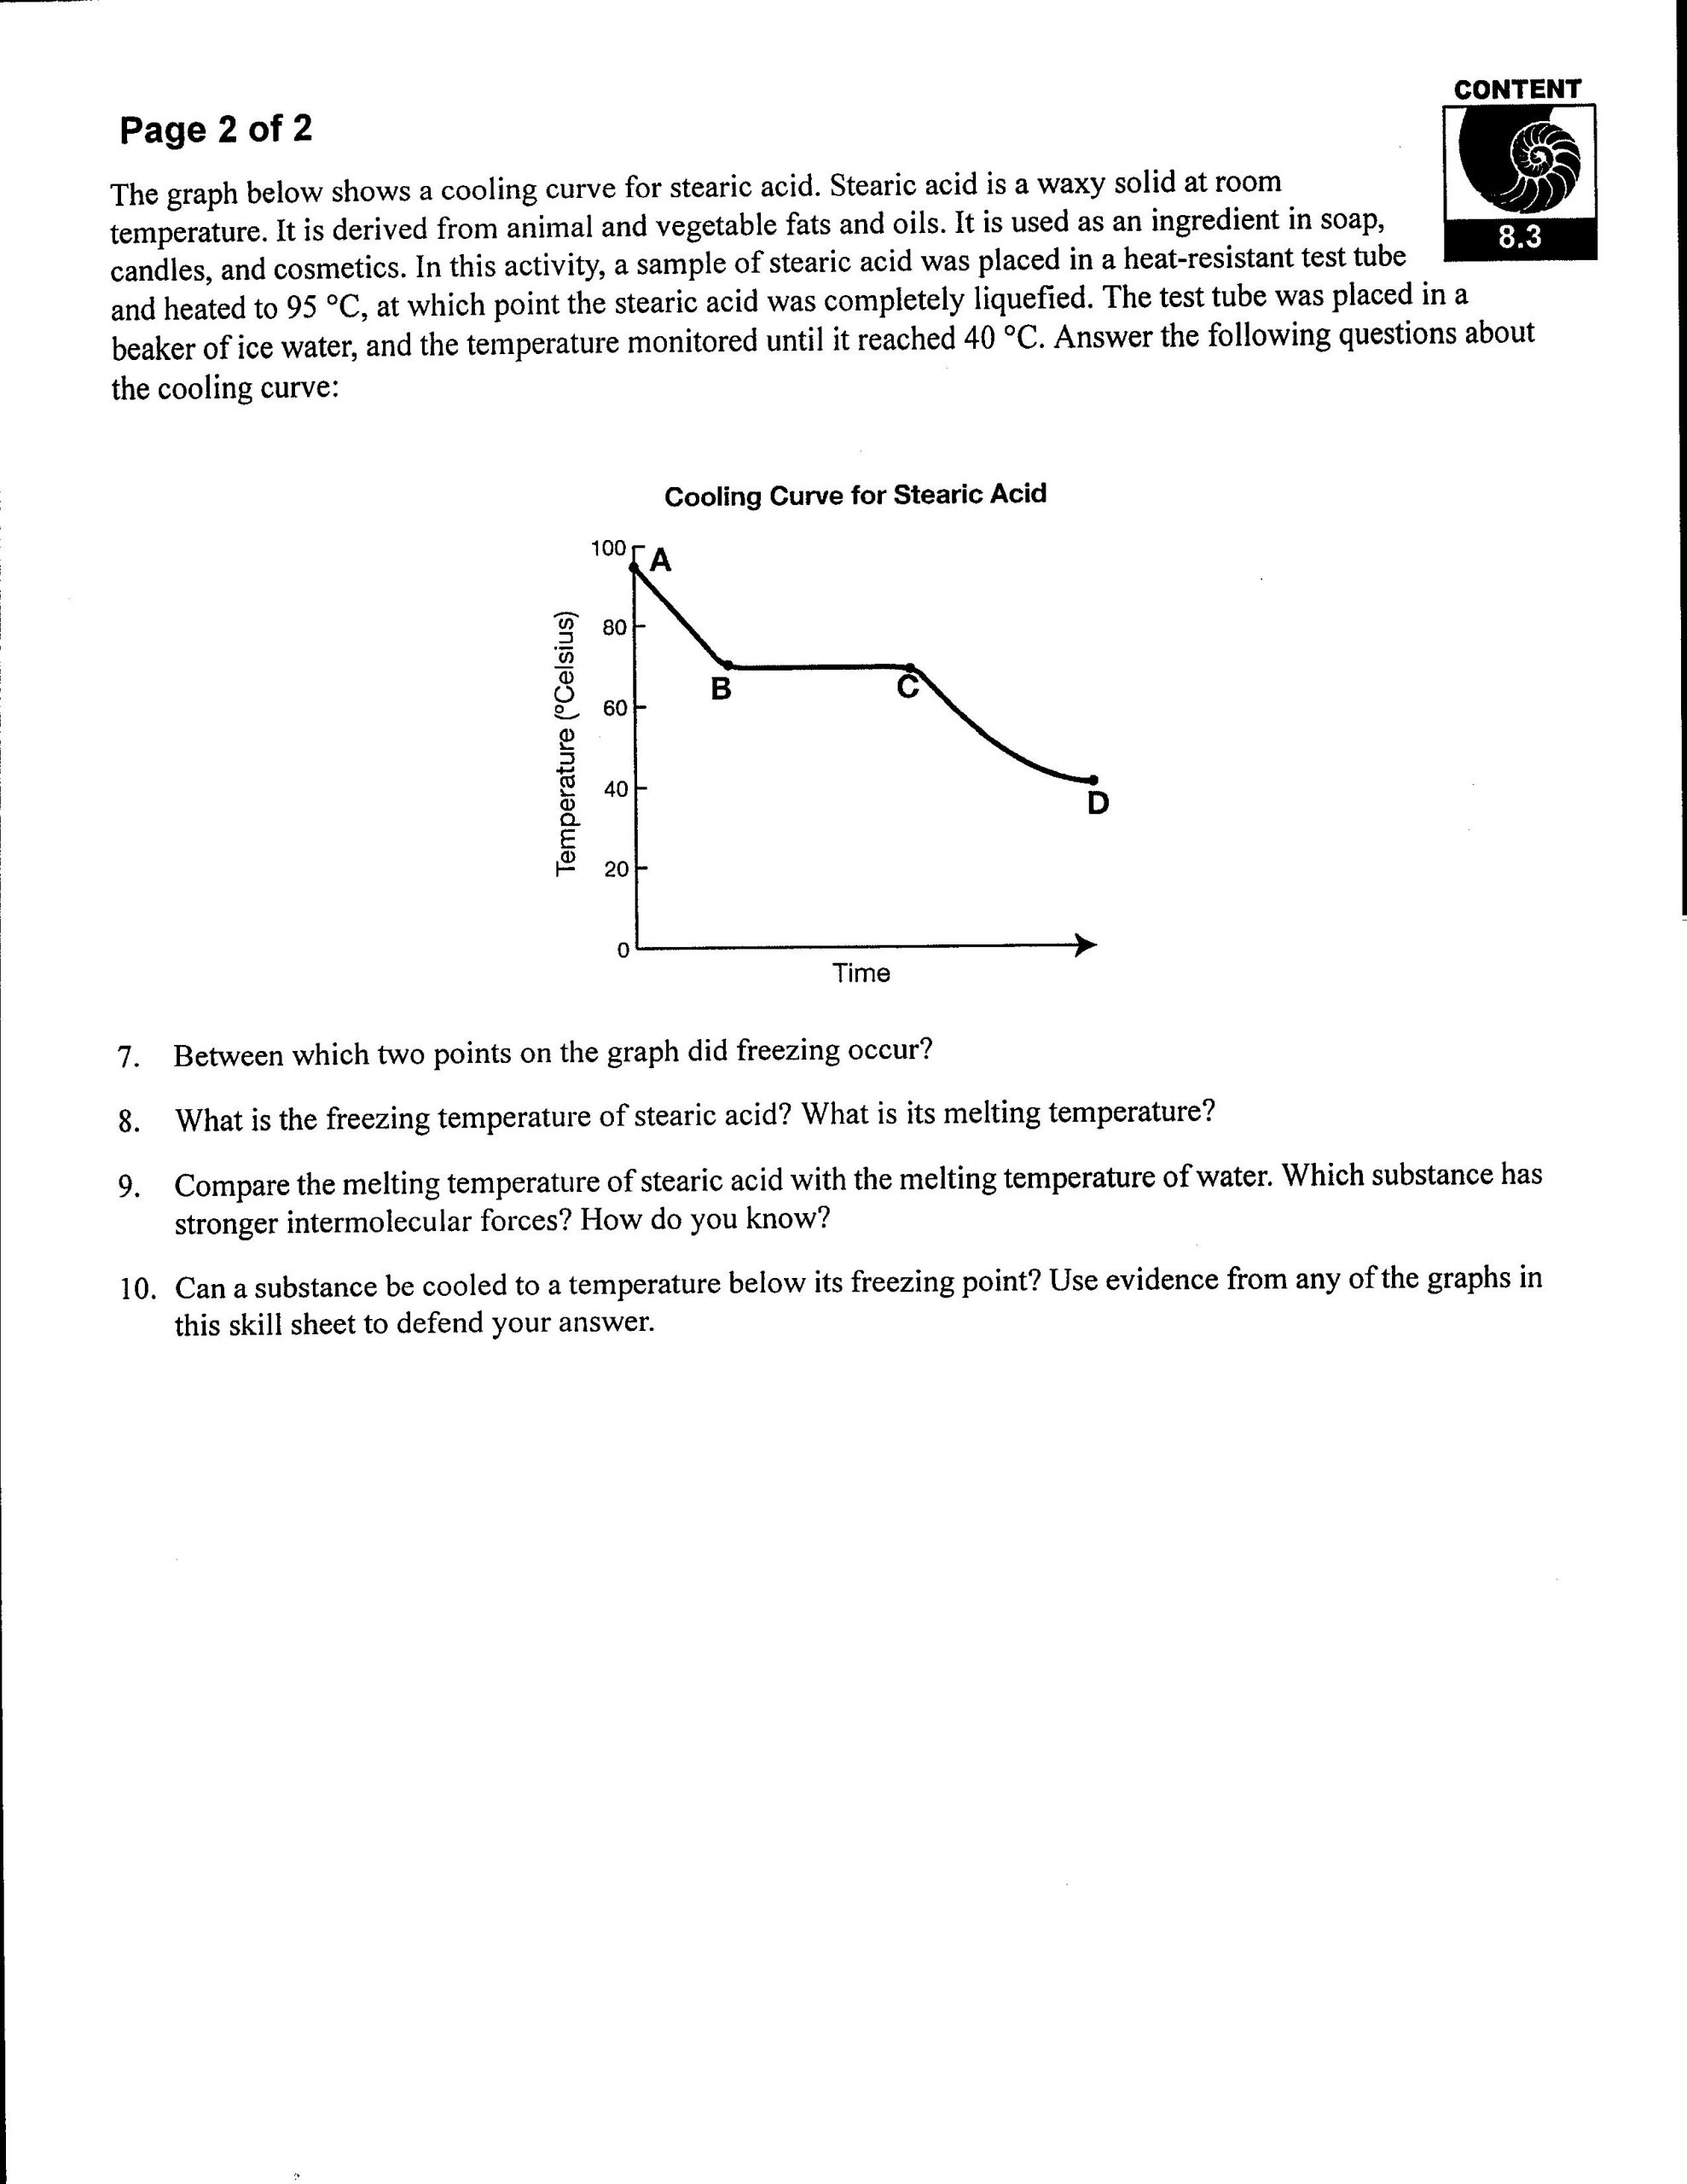 Heating Curve Worksheet Answers Rs Heating Heating and Cooling Curves Worksheet